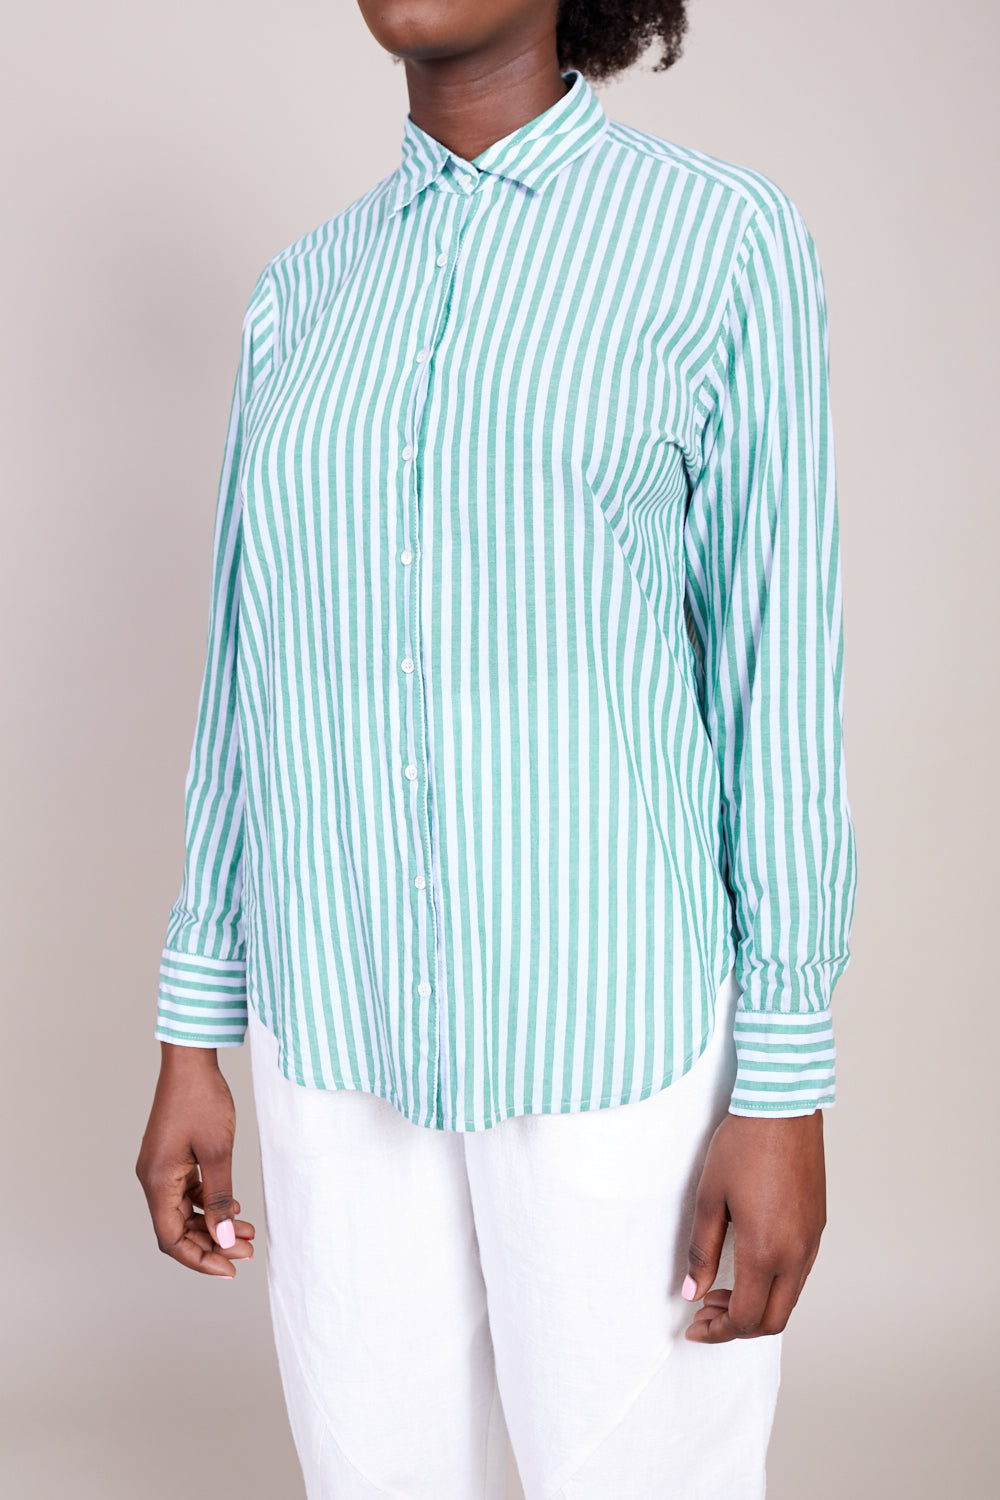 Xirena Beau Shirt in Clearwater - Vert & Vogue